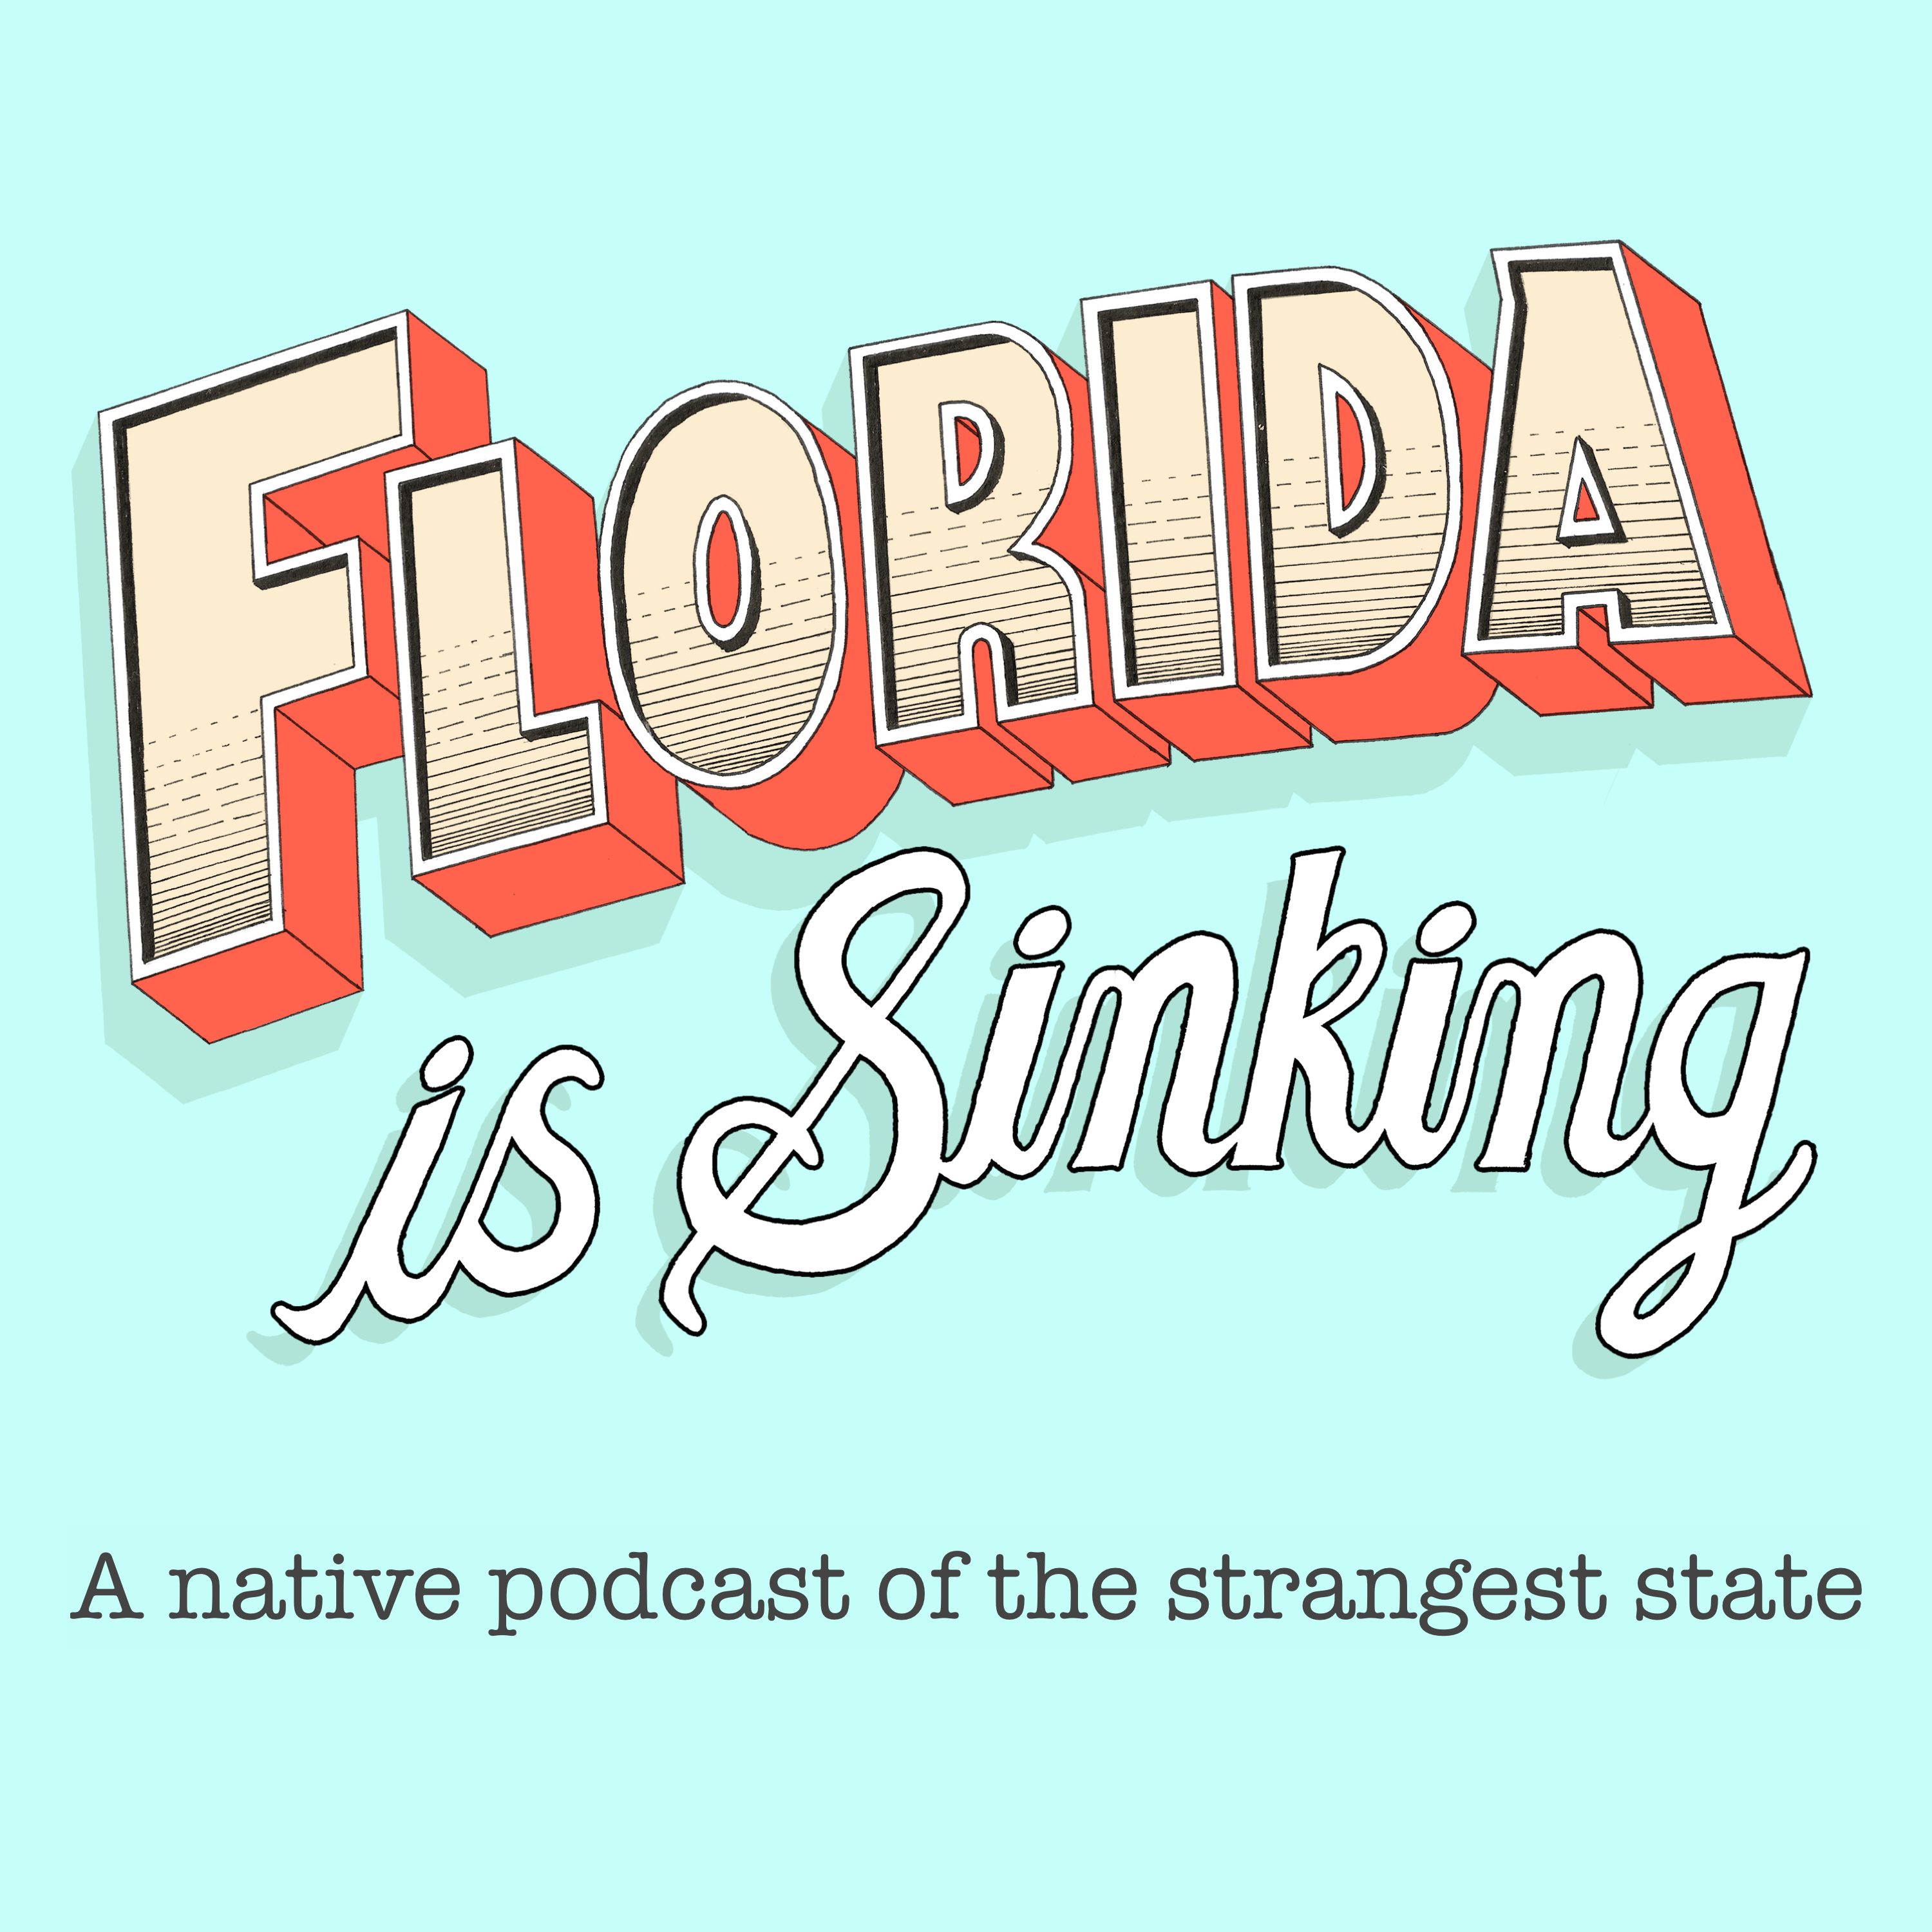 Florida is Sinking...